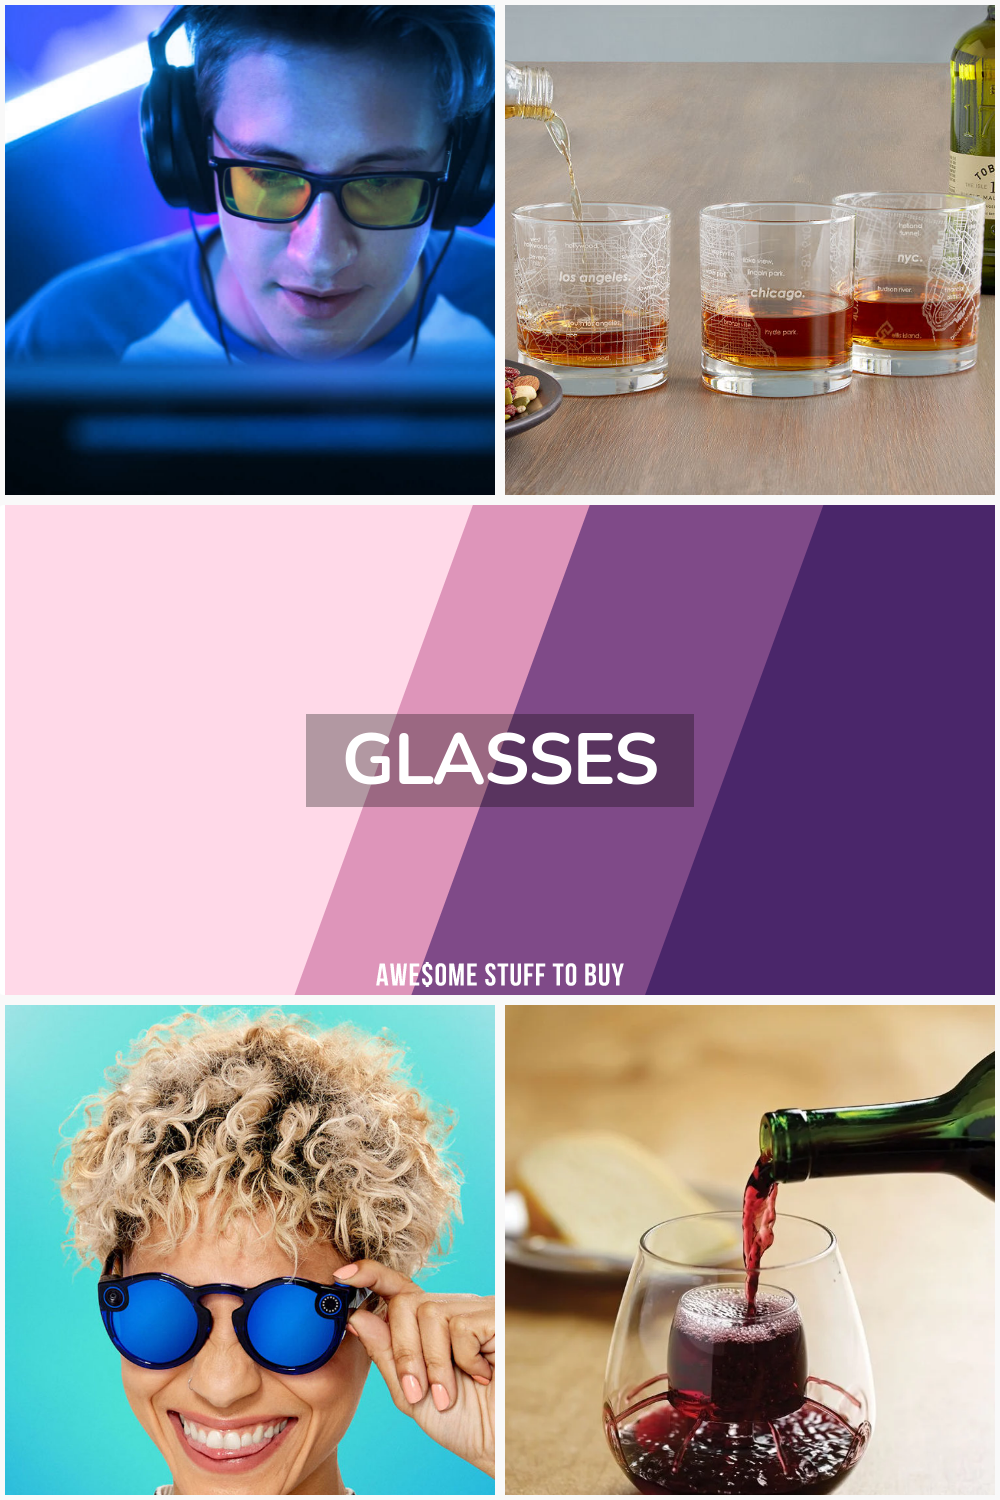 glasses // Awesome Stuff to Buy